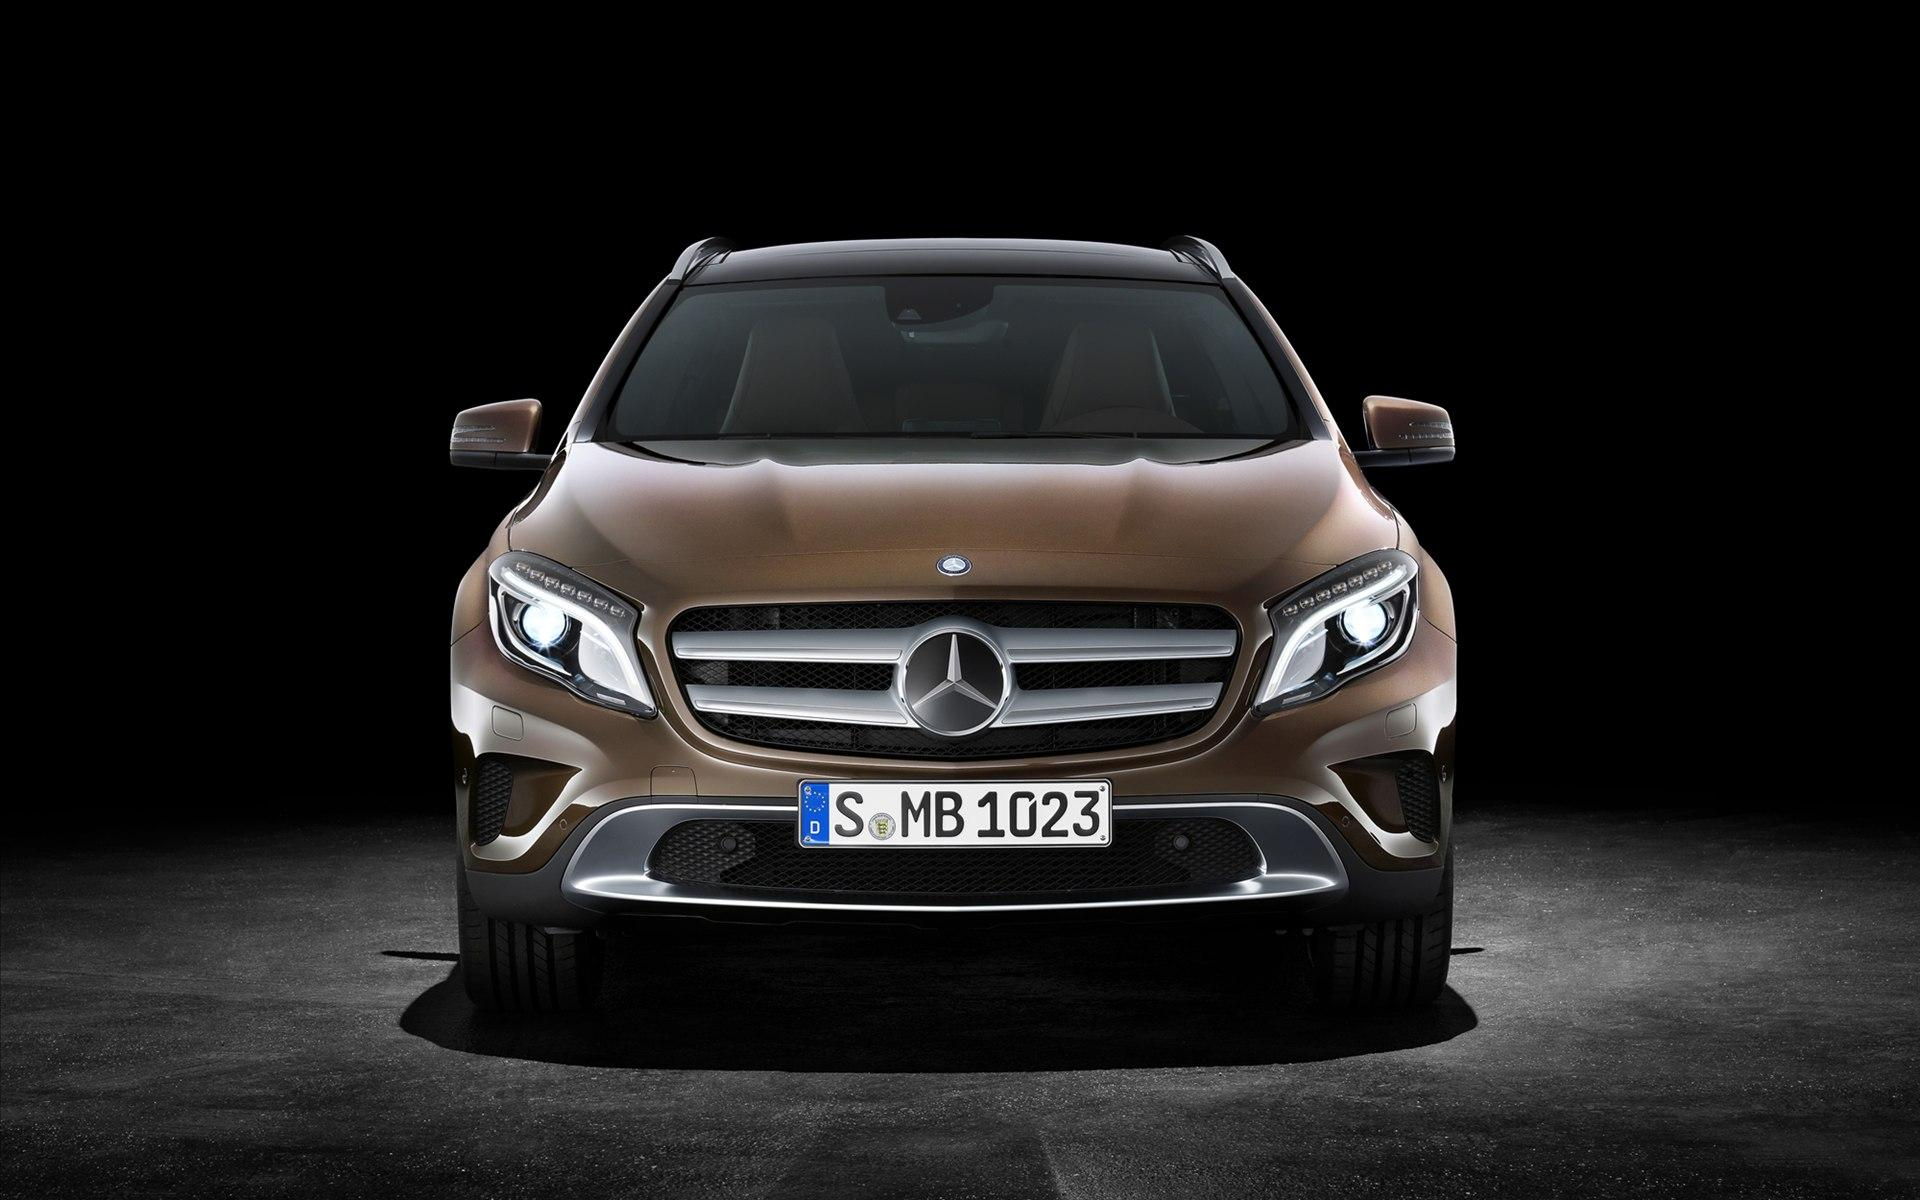 Mercedes-Benz GLA-Class Wallpaper 3 - 1920 X 1200 | stmed.net